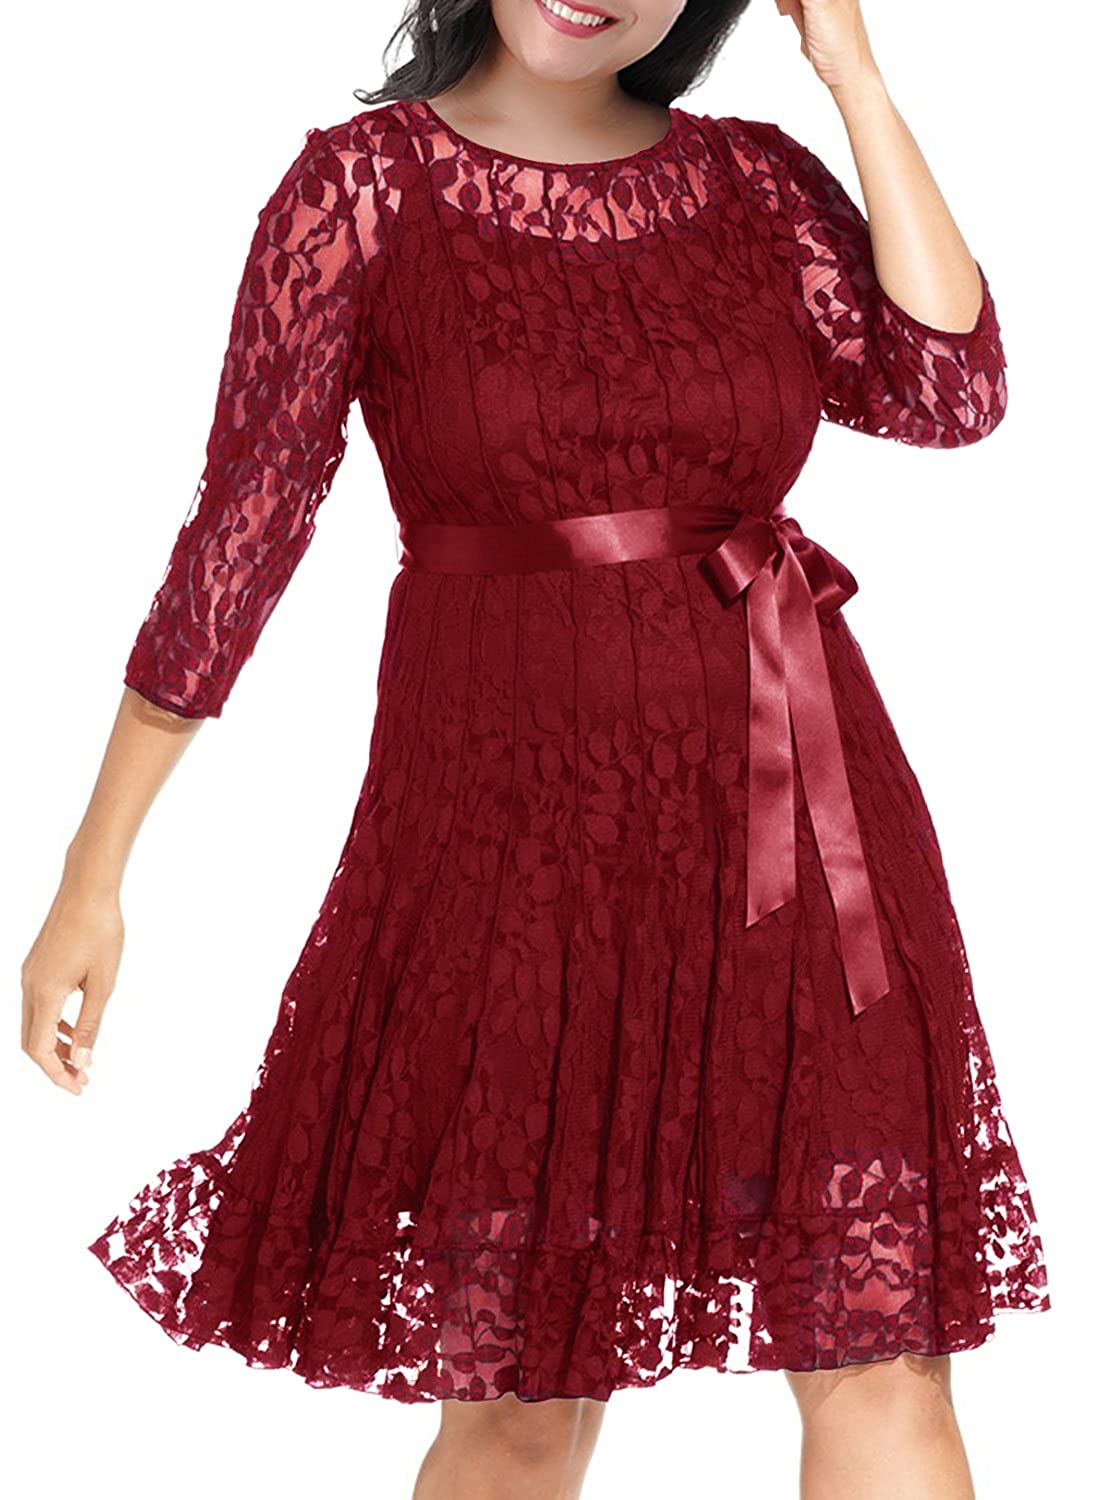 Nemidor Women's Illusion Floral Lace 3/4 Sleeves Plus Size Cocktail Dress